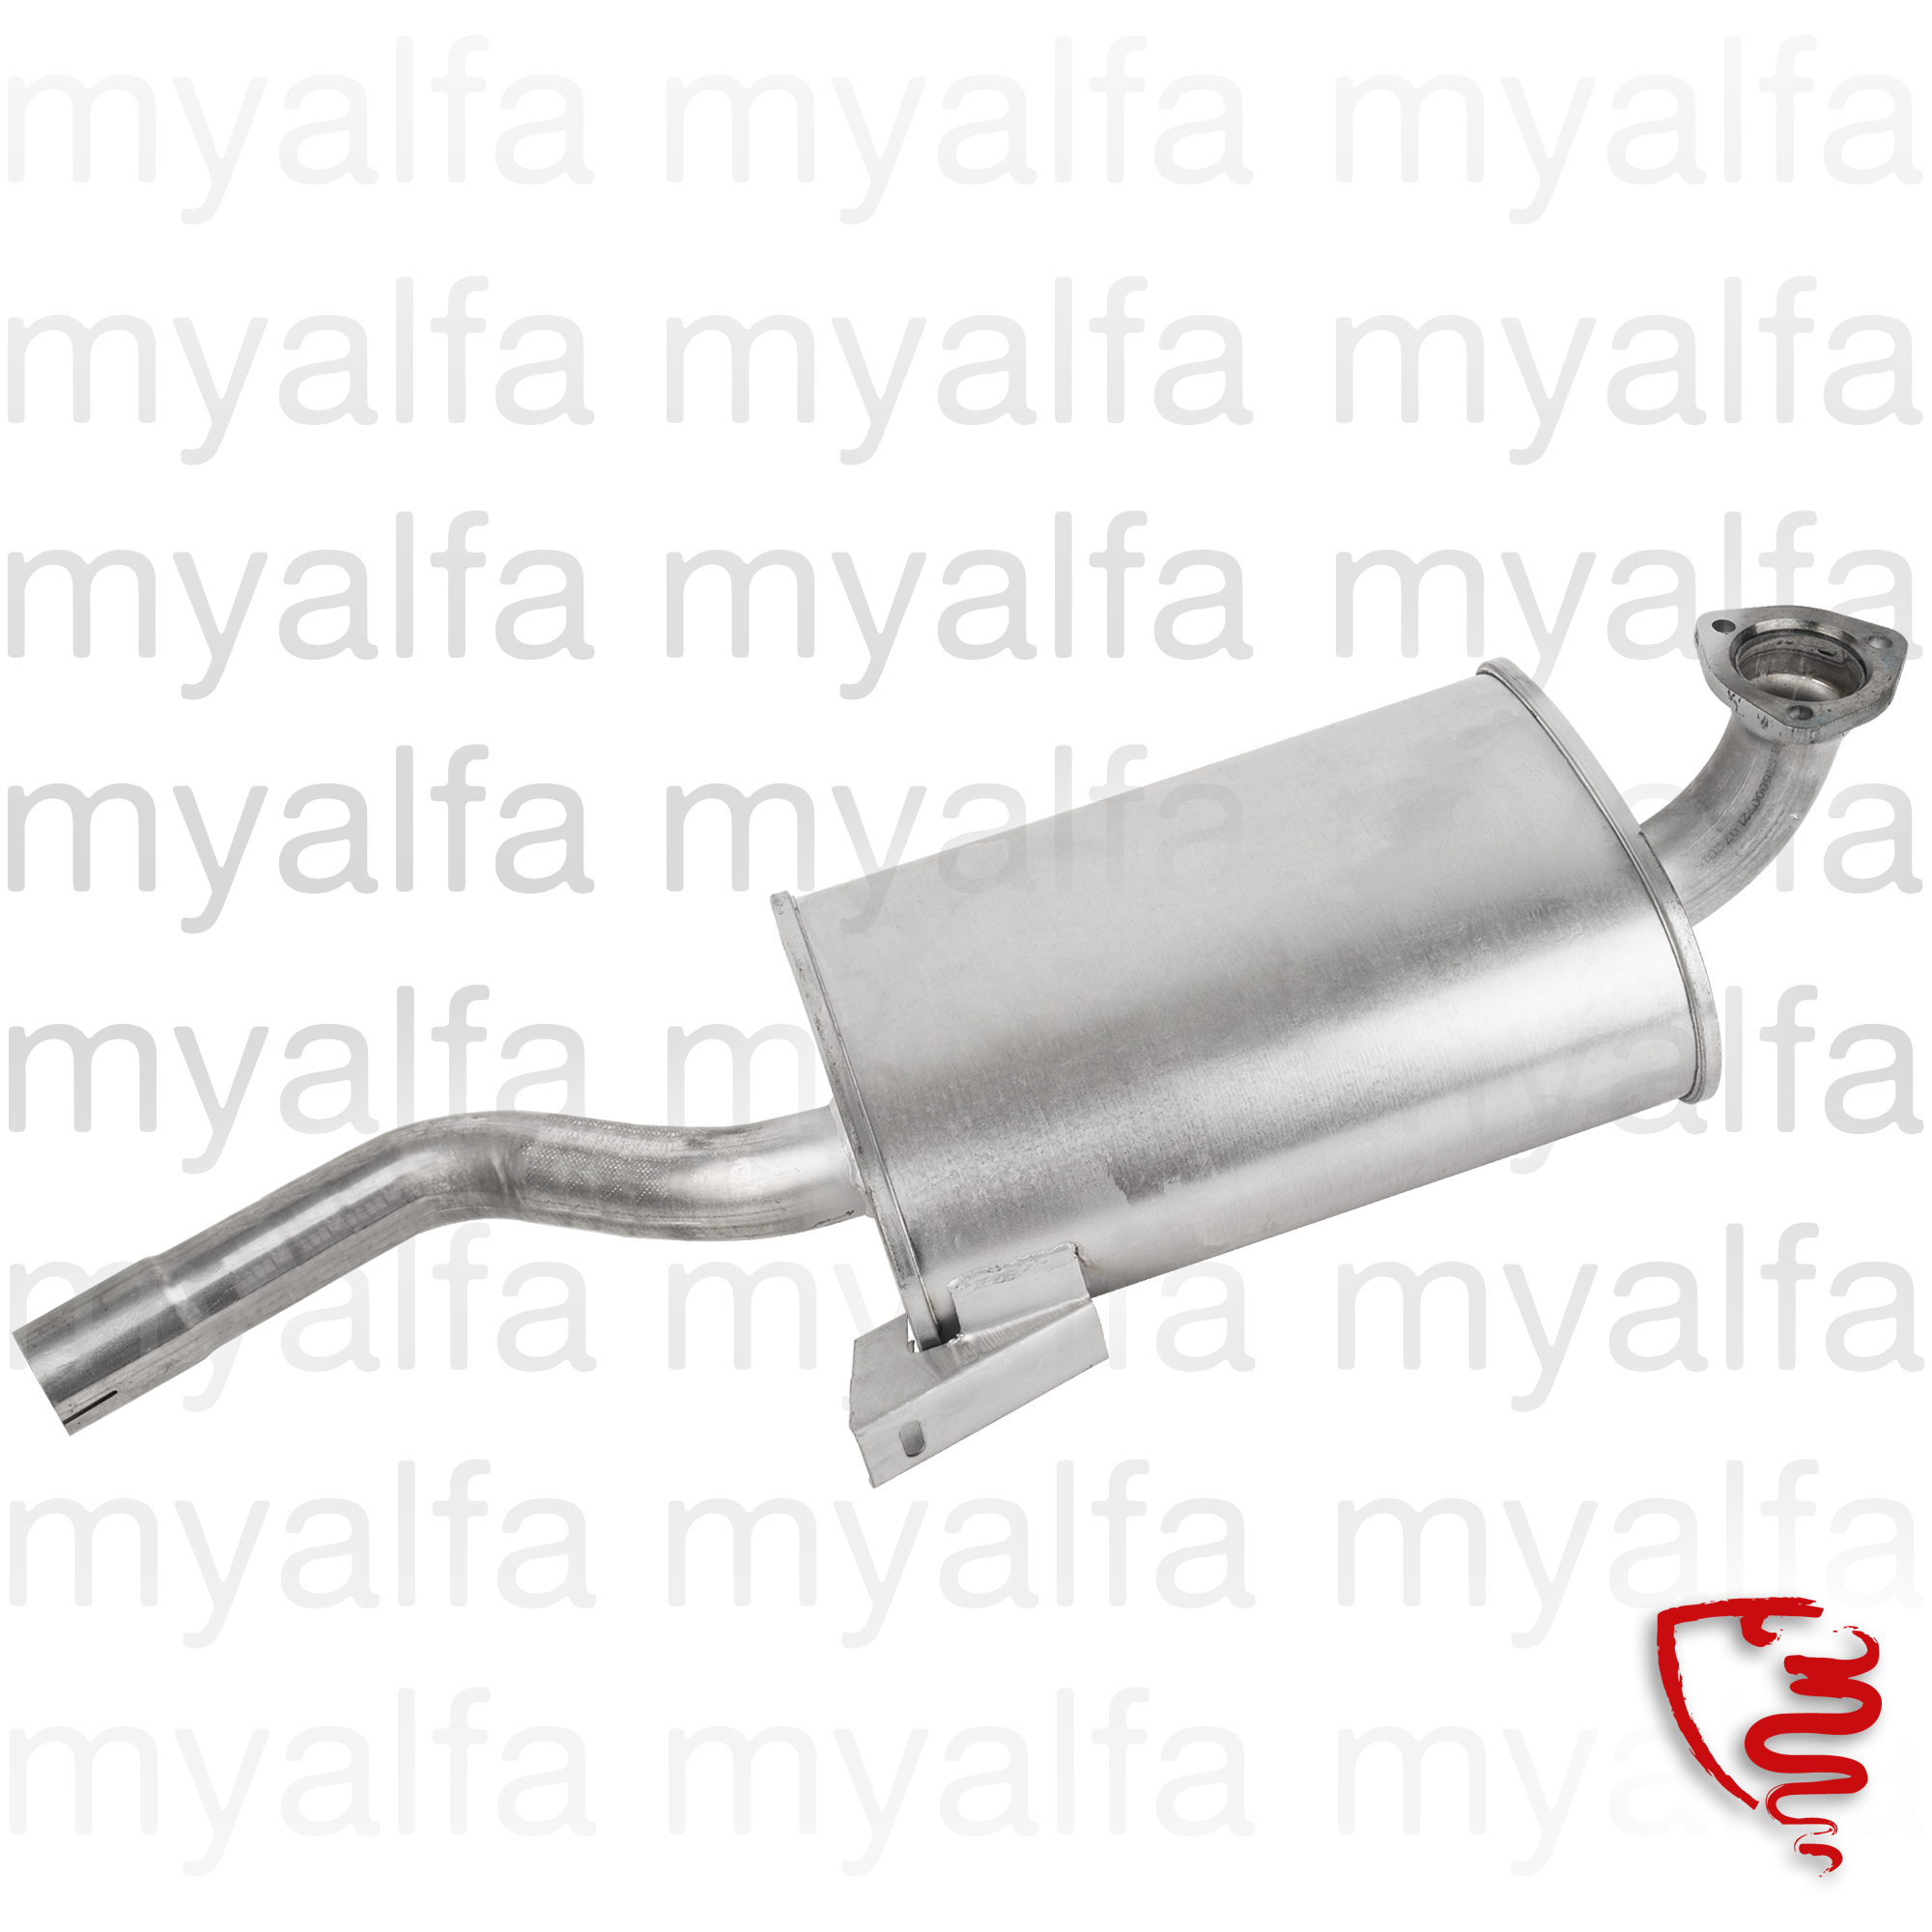 muffler middle Spider without catalyst for 105/115, Spider, Exhaust System, Exhaust